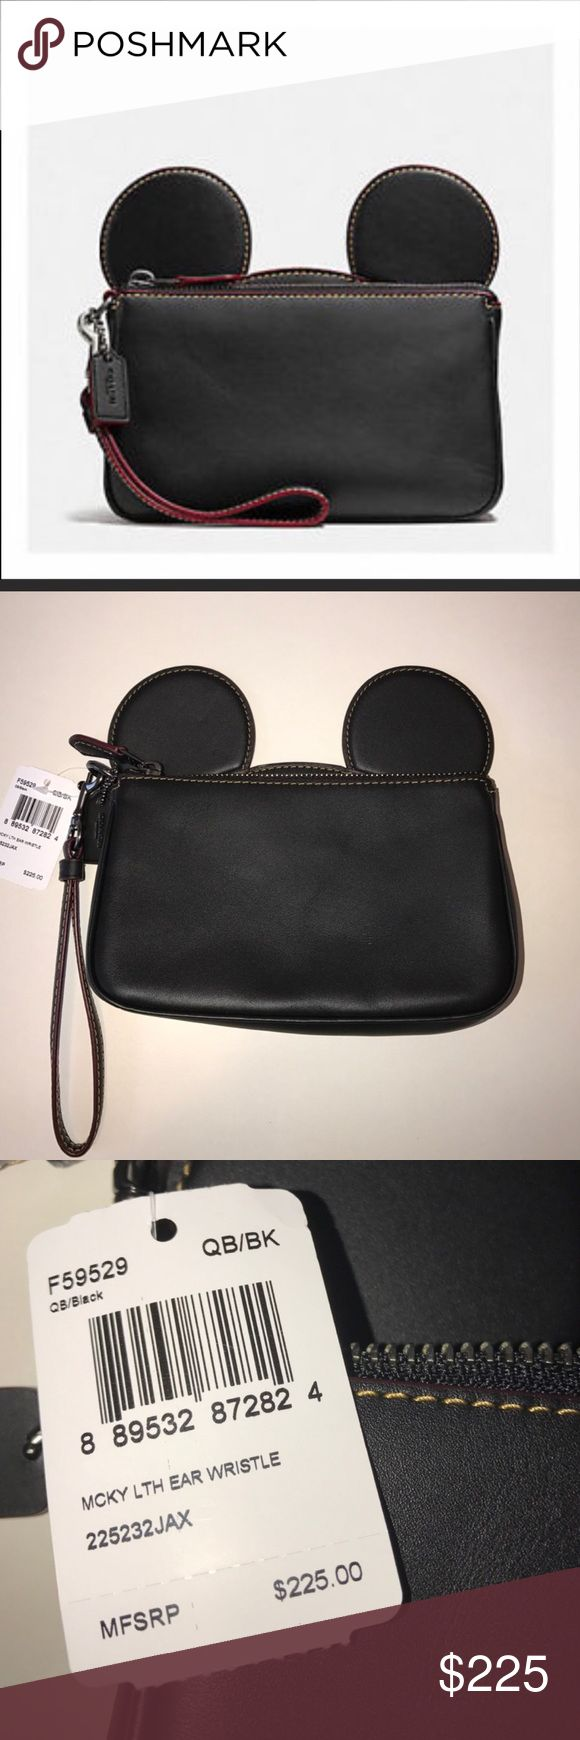 Mickey x Coach Black Ears Wristlet, New! Disney Beautiful black leather, limited release and sold out in stores, 7 x 5 x 2, fits an IPhone 7+, comes with the original Coach shopping bag. Disney Bags Clutches & Wristlets